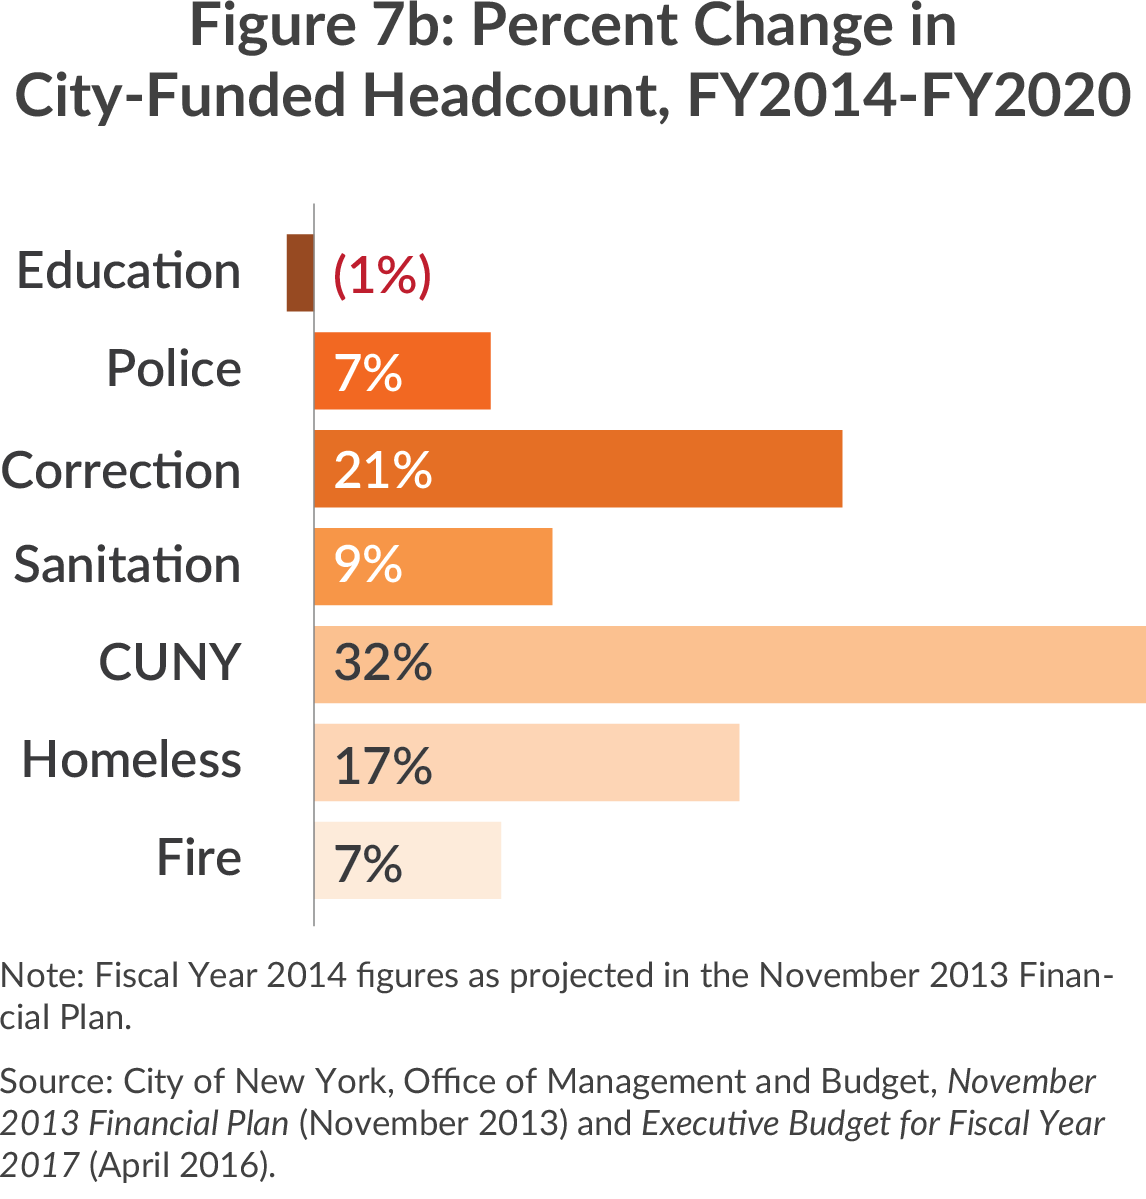 Percent change in city-funded headcount, fy2014-2020